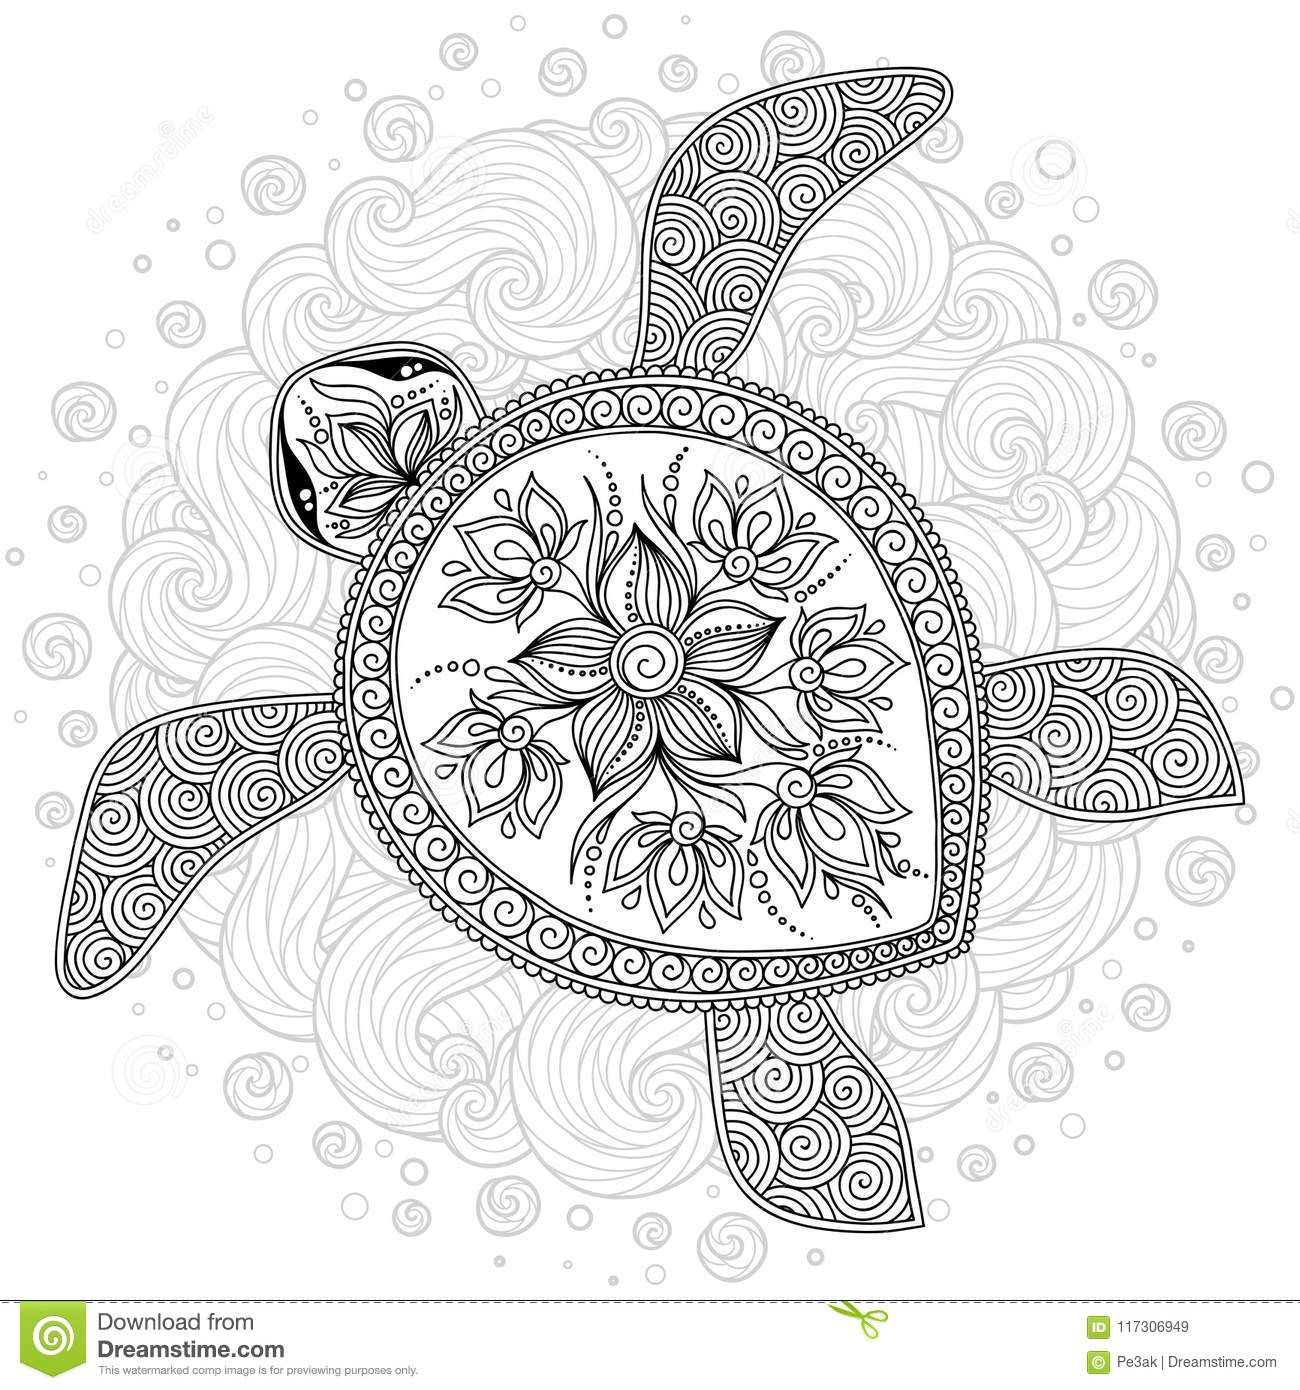 Vector Illustration Of Sea Turtle For Coloring Book Pages Turtle Coloring Pages Animal Coloring Pages Henna Animals